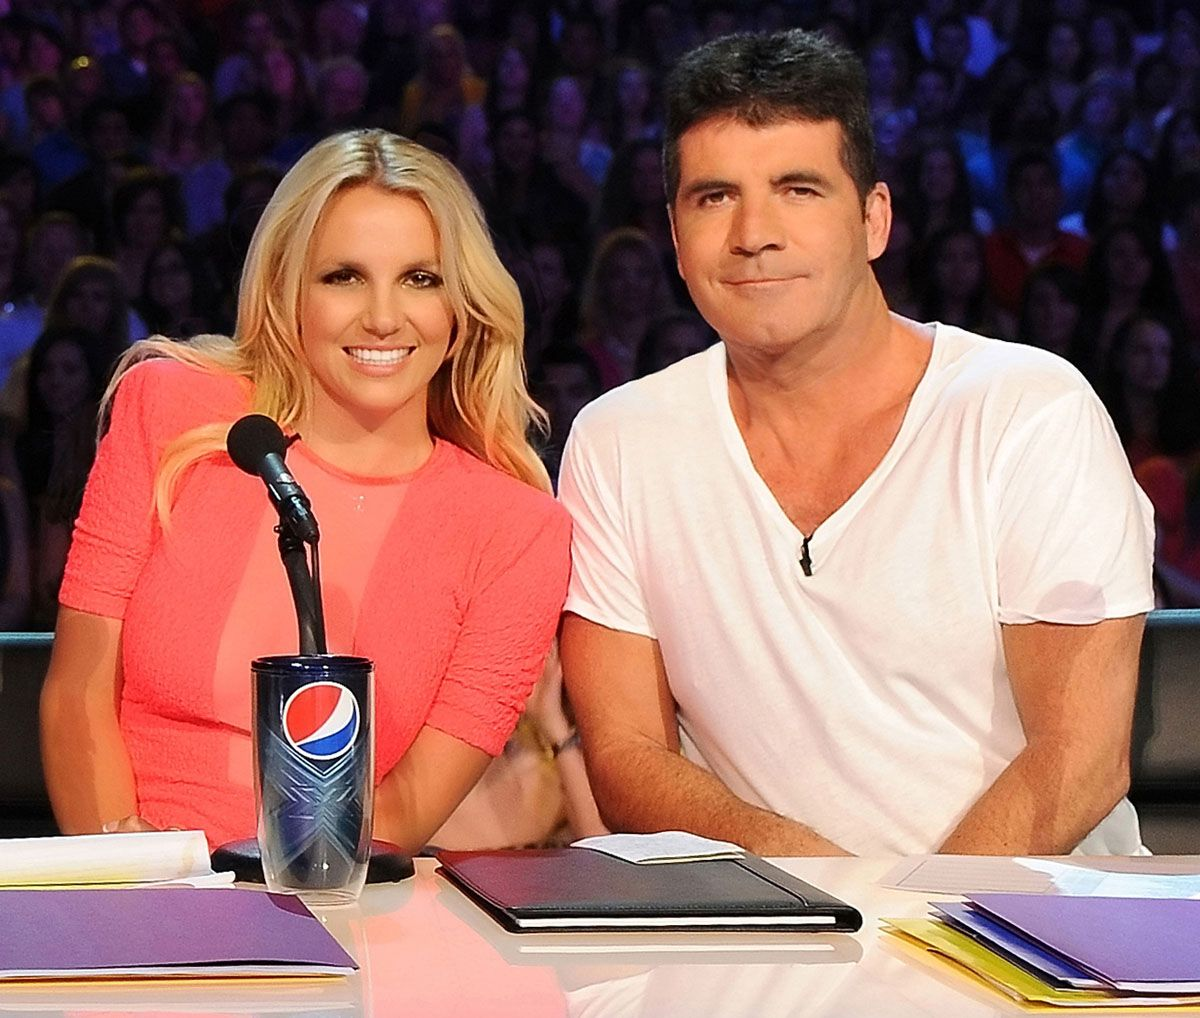 britney spears and simon cowell relationship